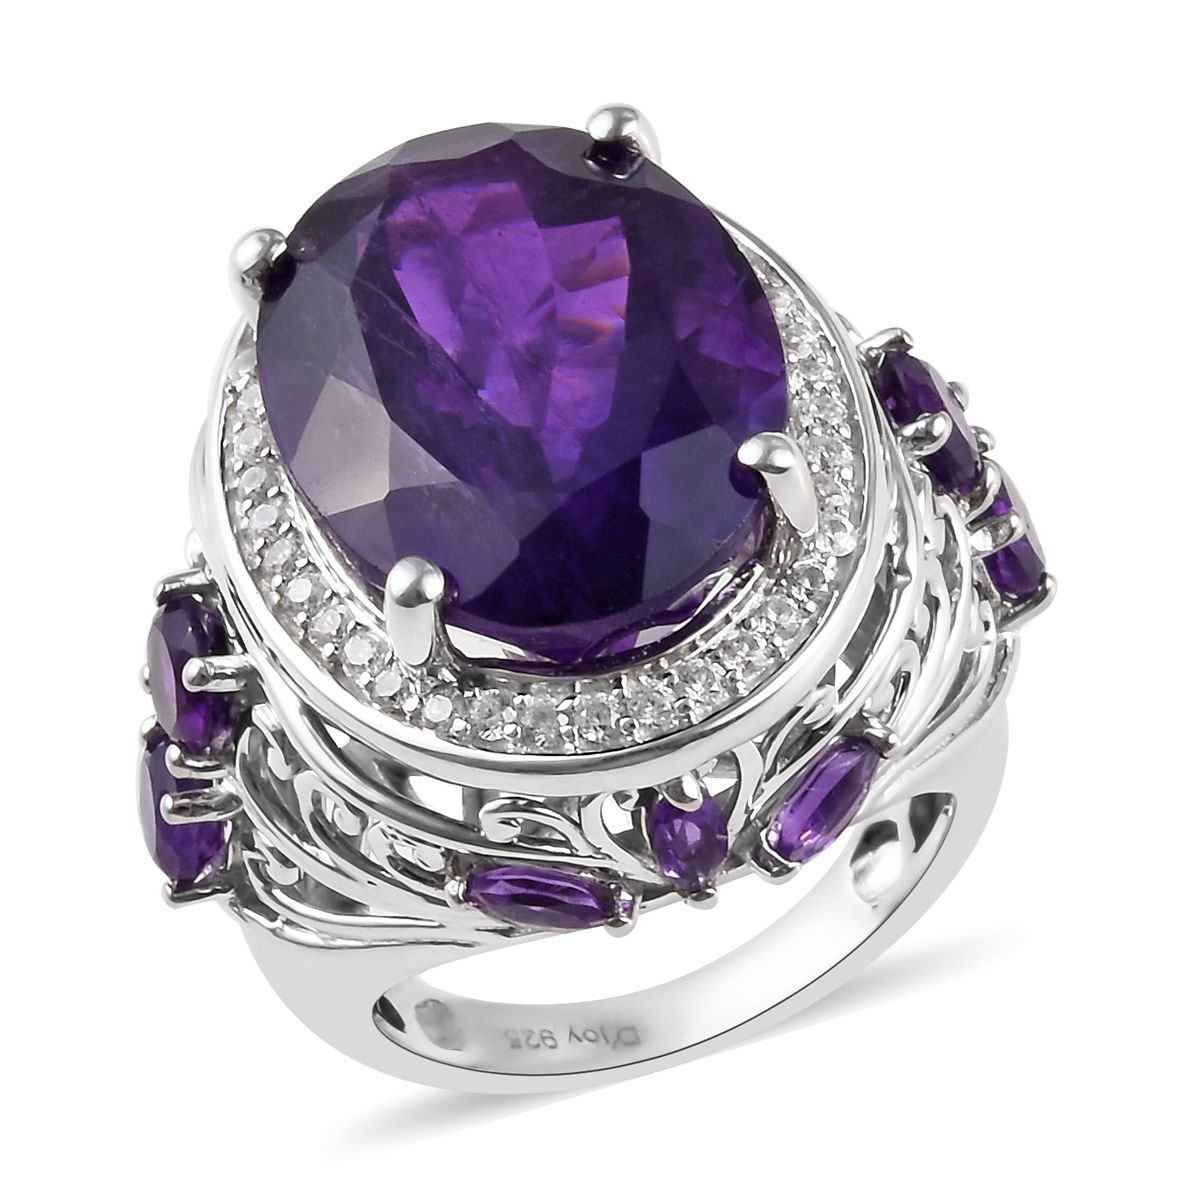 Sizable Handmade Jewelry Purple Amethyst Quartz Sterling Silver Overlay Ring Size 5.5 US Gorgeous